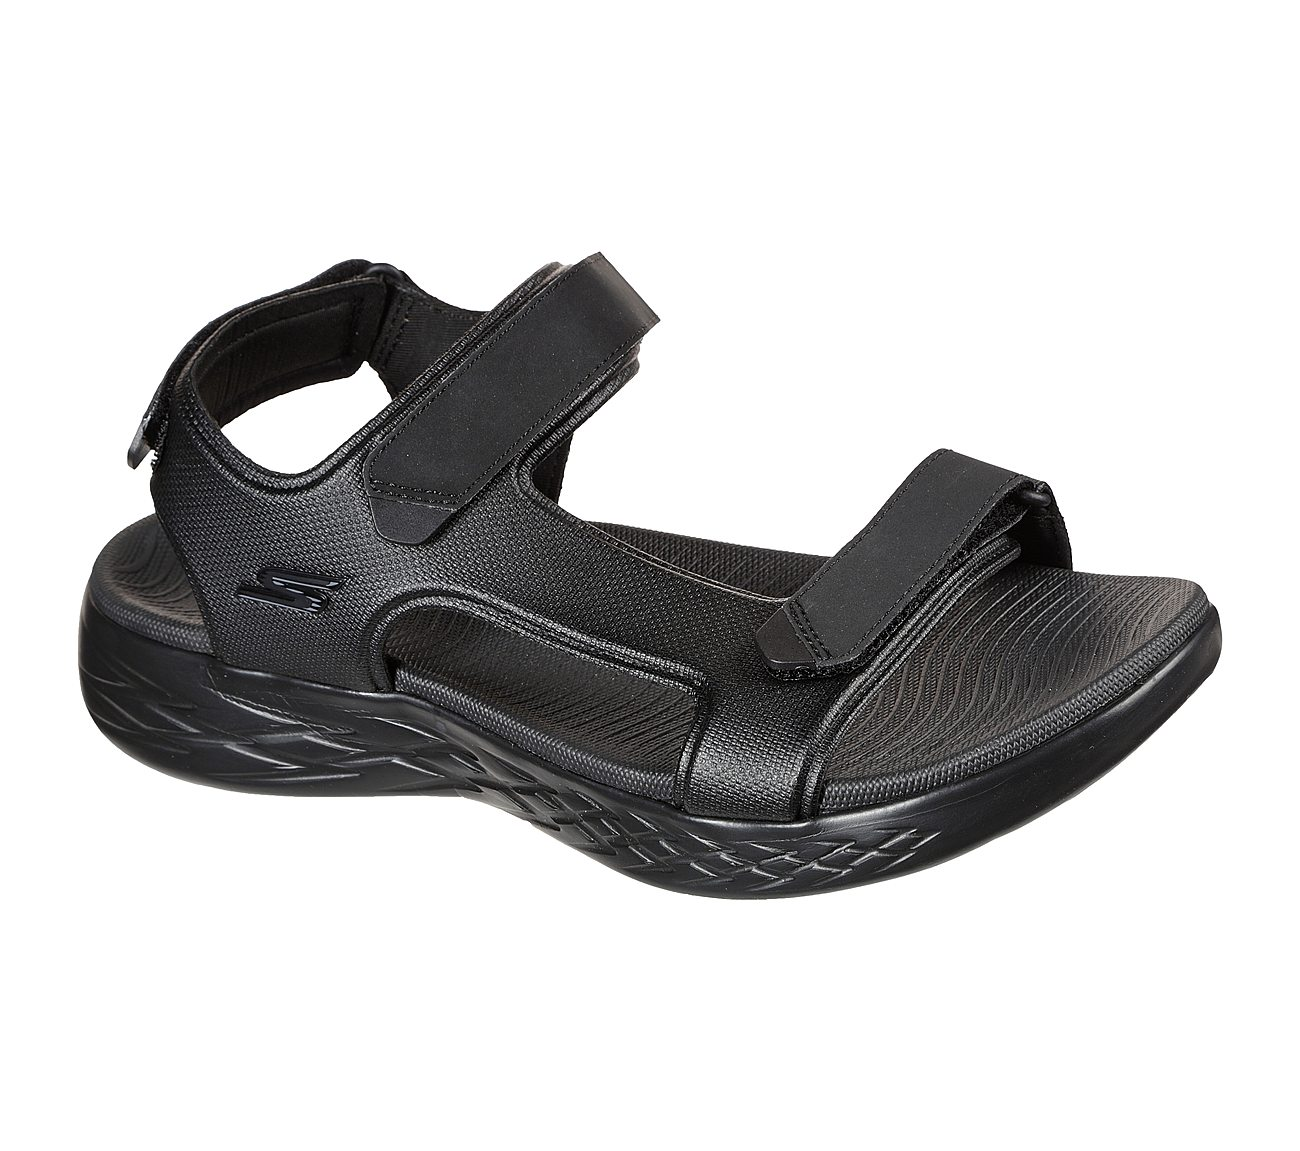 skechers sandals for men